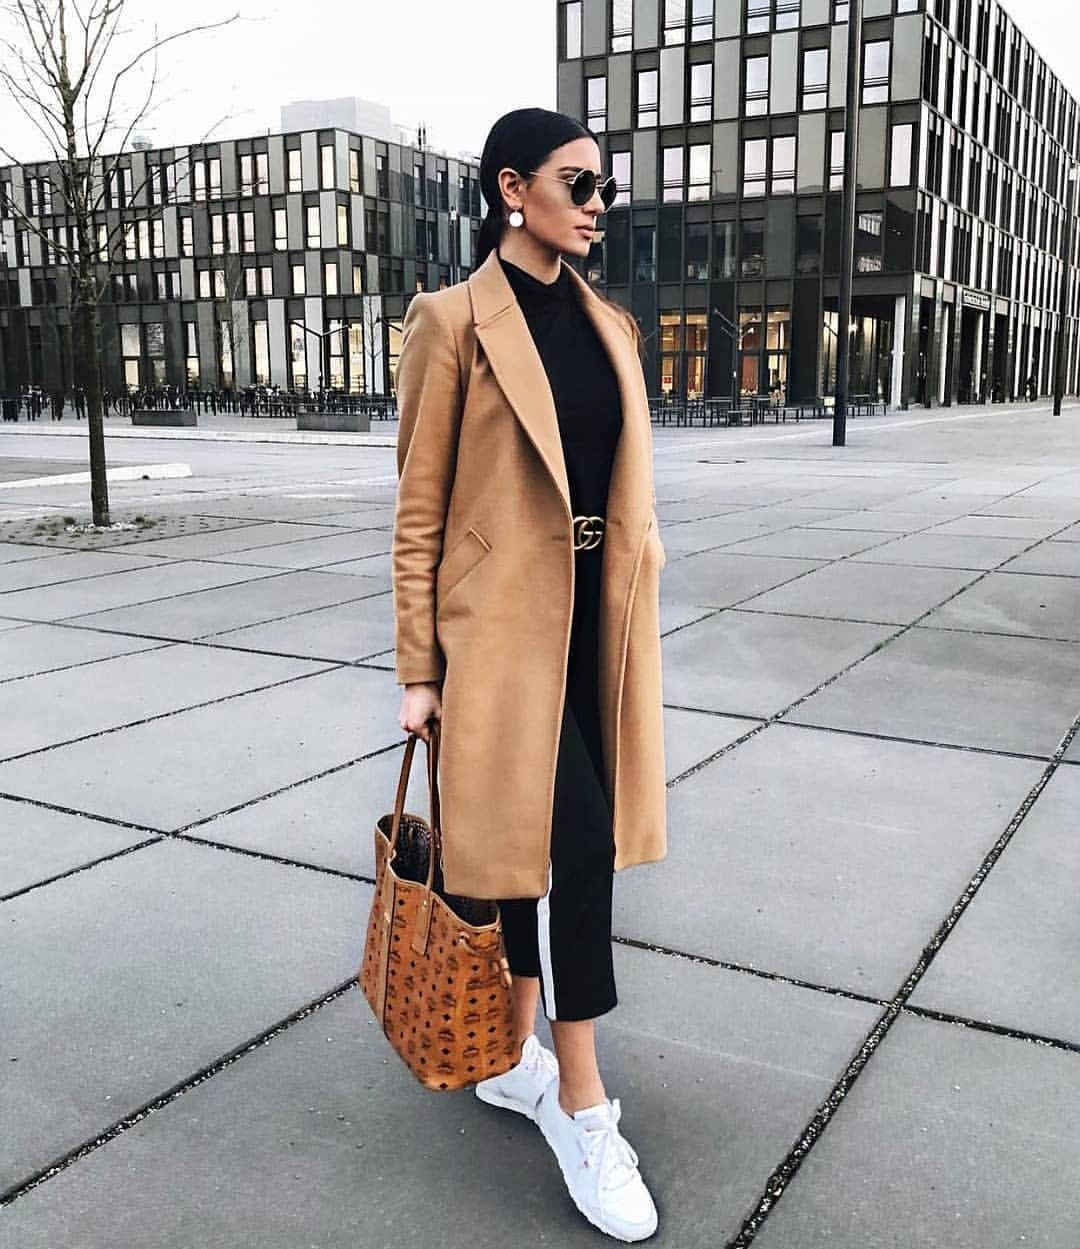 """simply_the_best_fashion on Instagram: """"@dilarakaynarca ❤️ inspo via @fashion_satisfaction ❤️ Check out link in BIO #ootd #outfitoftheday #hashtagsgen #lookoftheday #fashion…"""""""